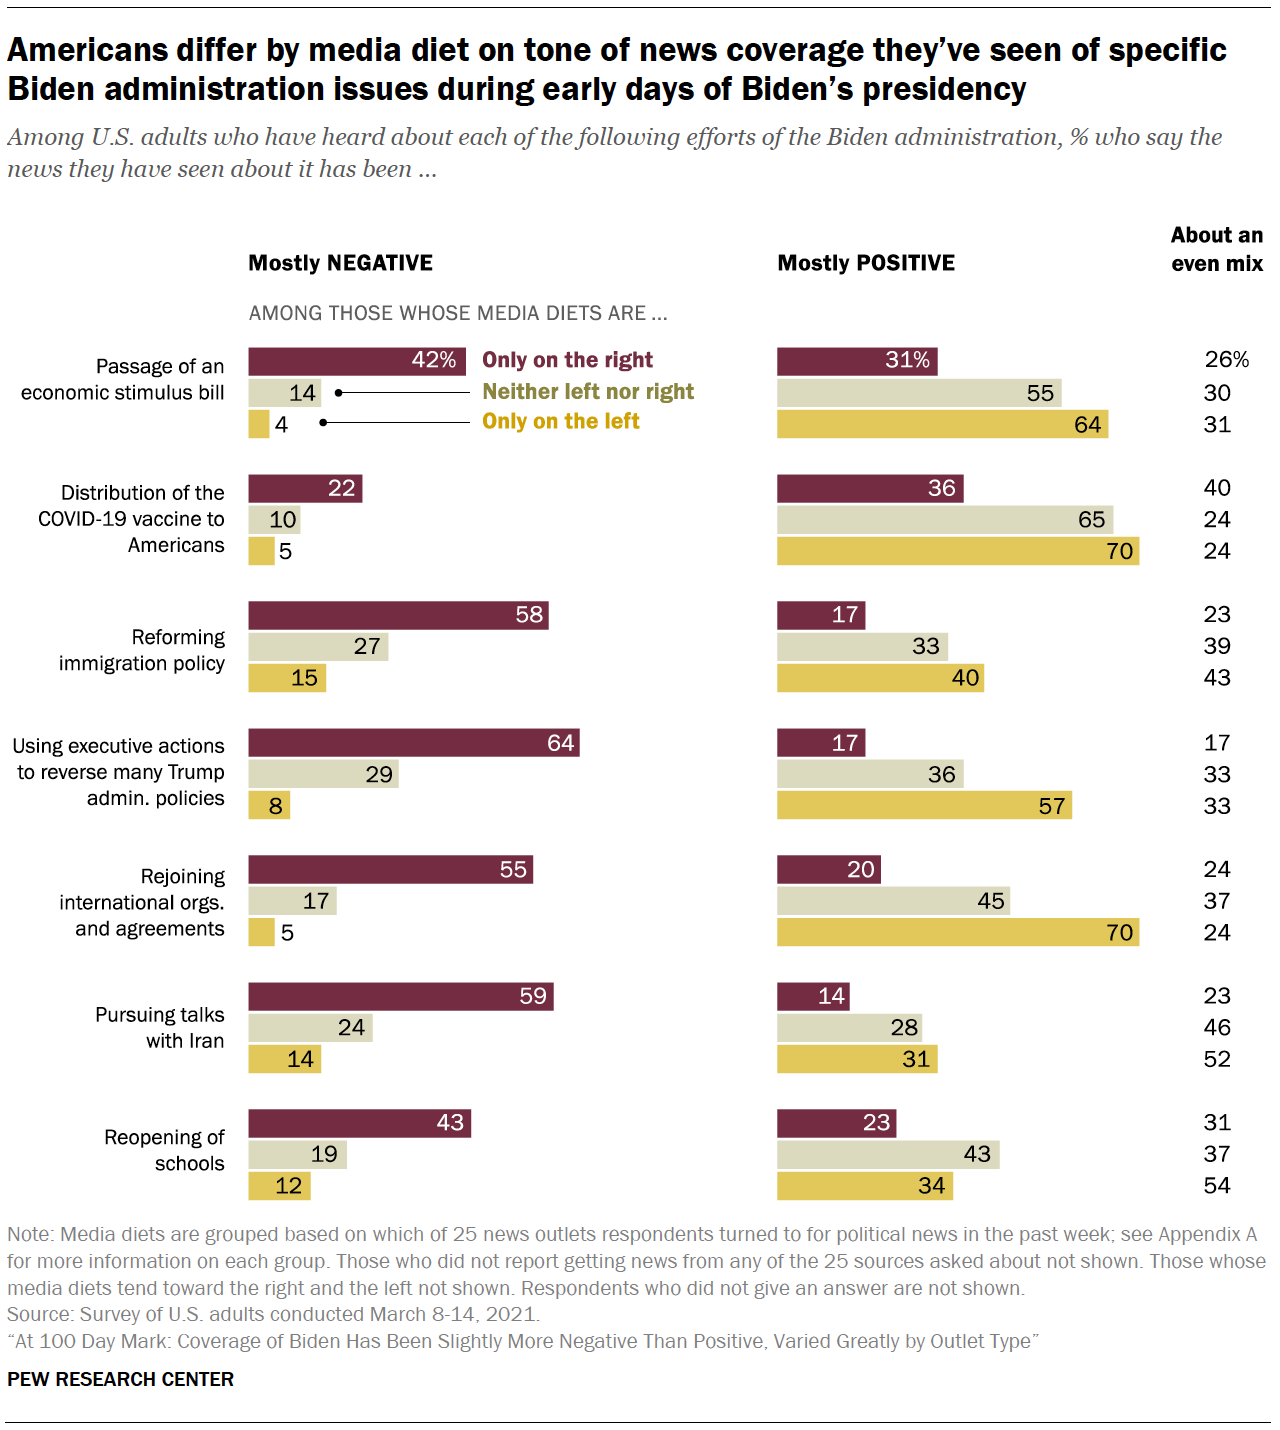 Americans differ by media diet on tone of news coverage they've seen of specific Biden administration issues during early days of Biden's presidency